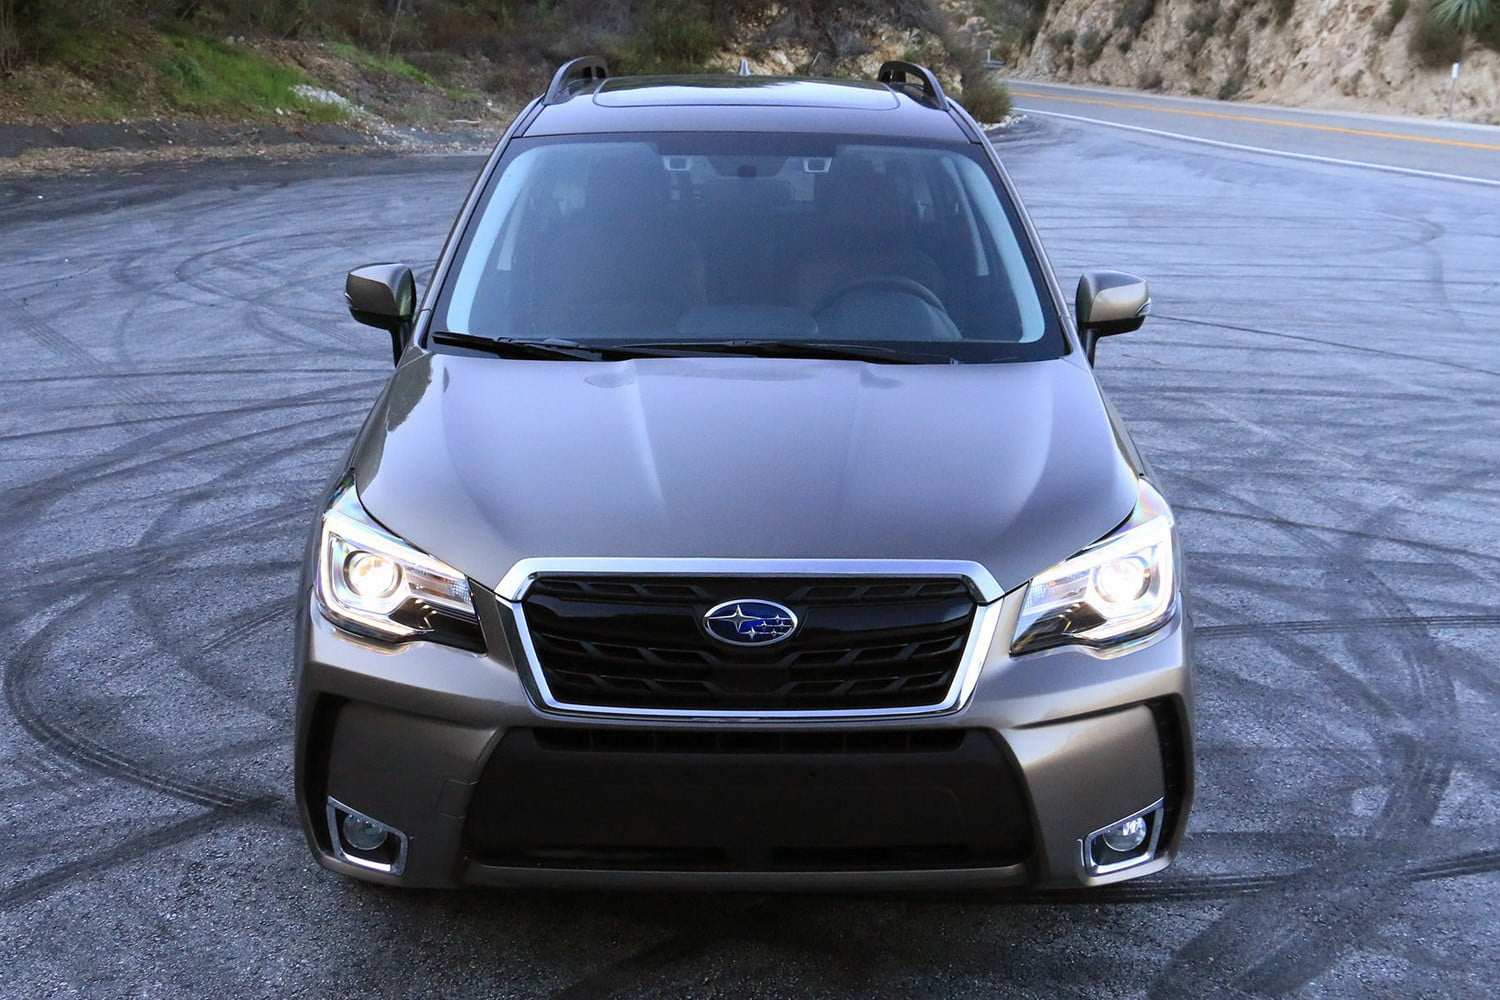 2017 Subaru Forester 2.0XT Touring Review | Digital Trends